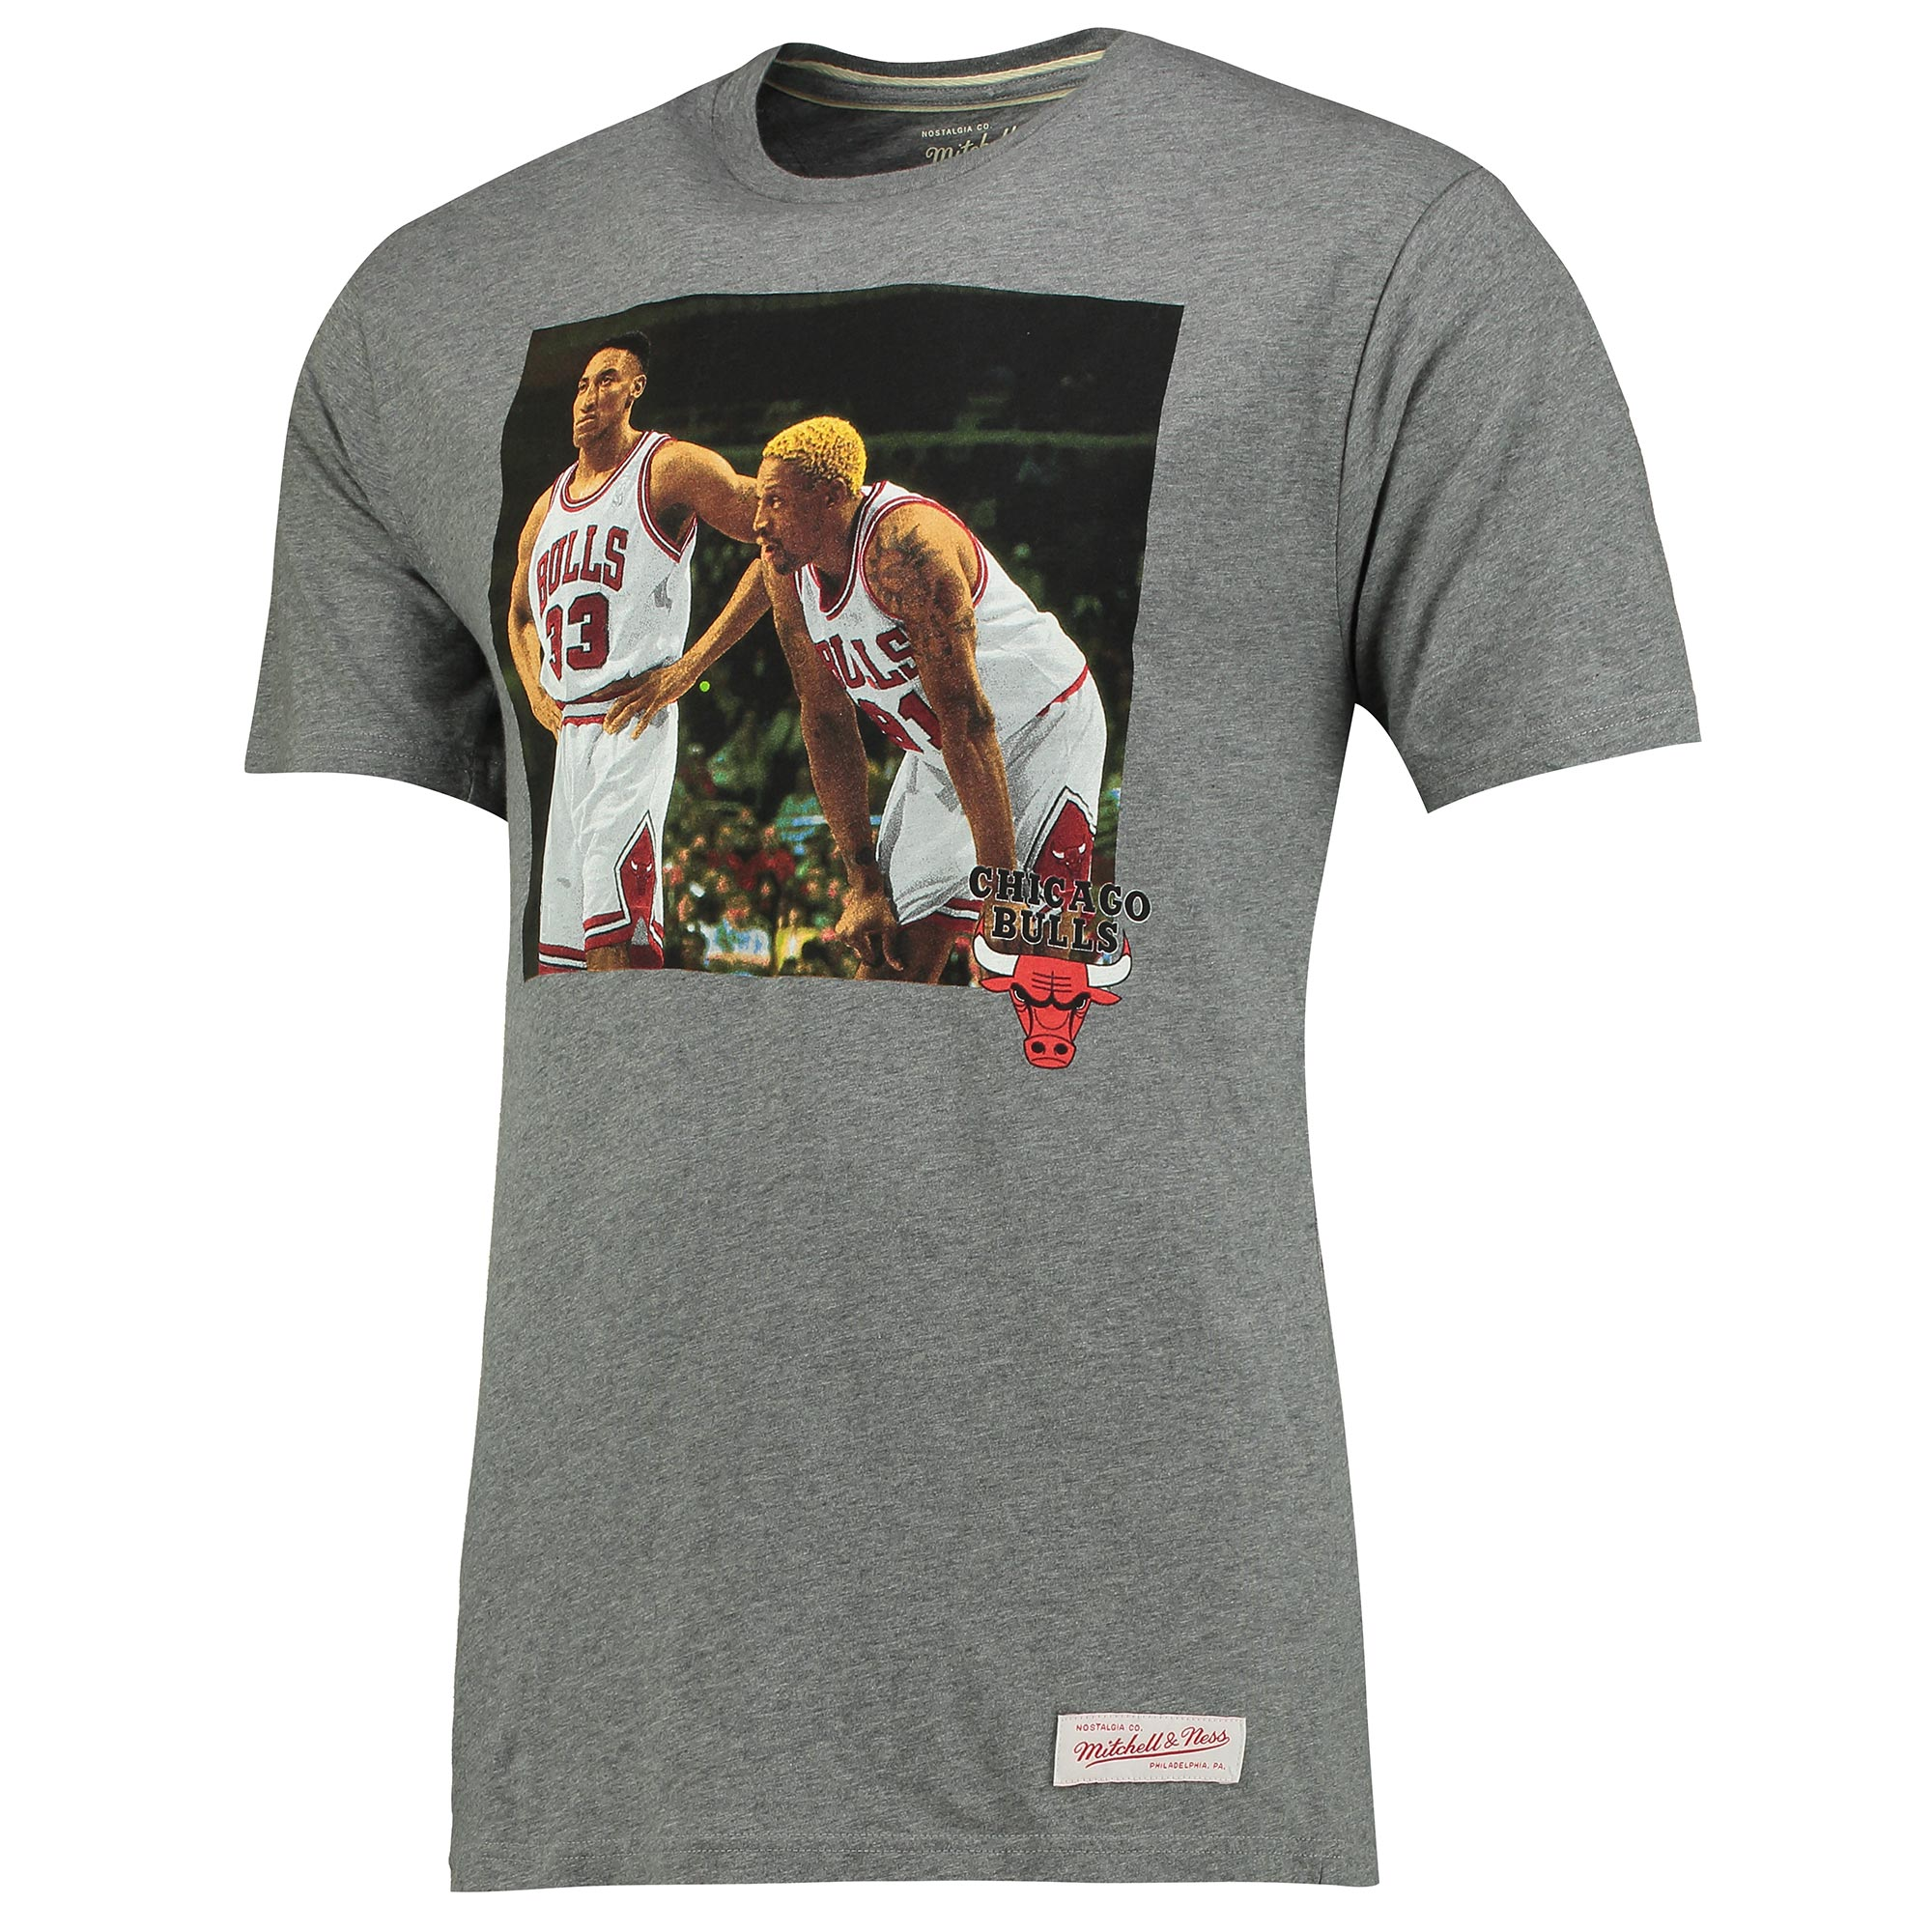 Chicago Bulls Teammate Pippen/Rodman Colour Photo T-Shirt by Mitchell